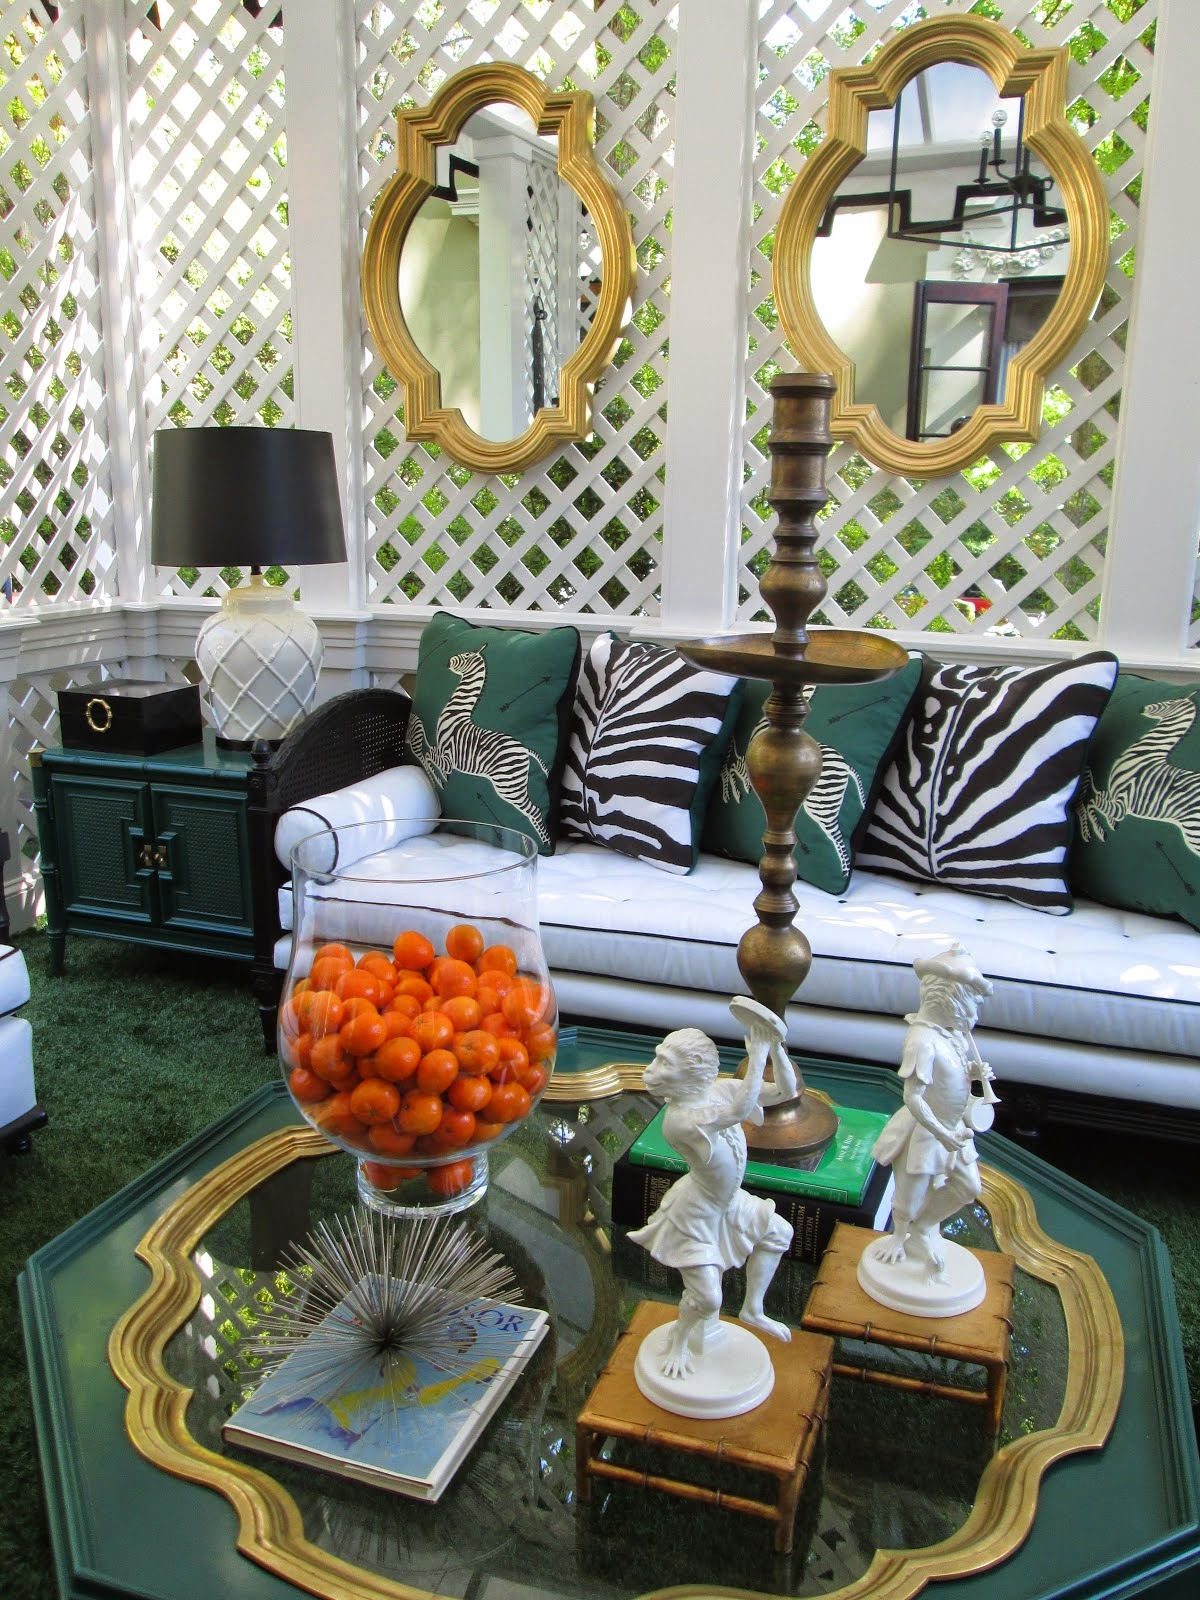 Parker Kennedy Living : The Glam Pad: Palm Beach Chic with Parker Kennedy Living